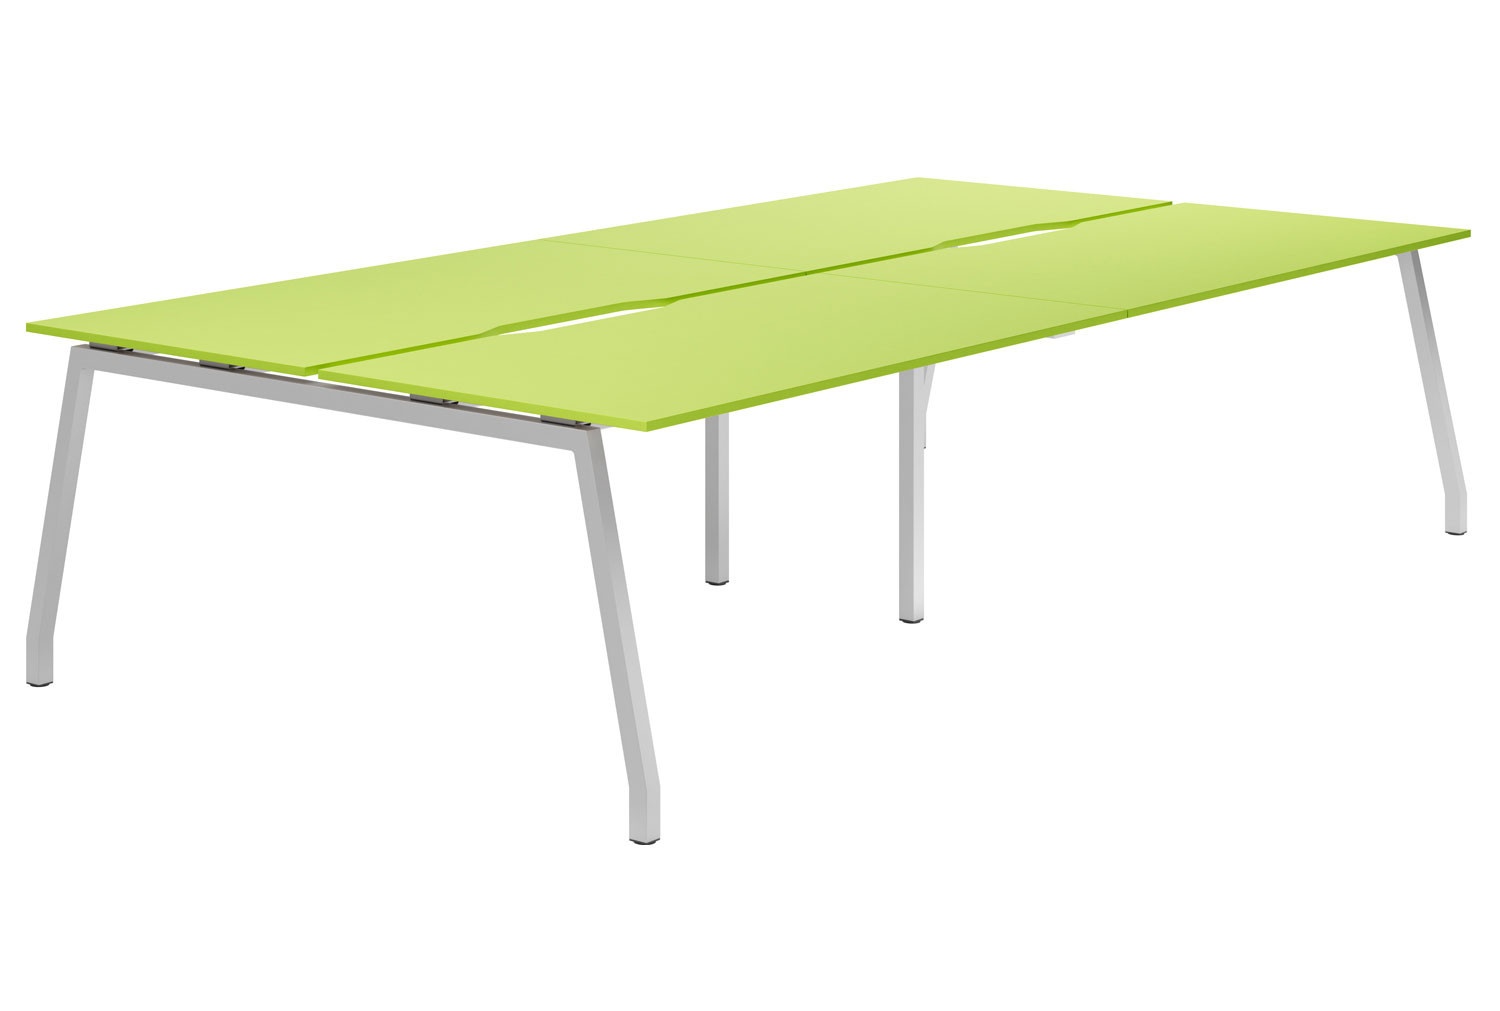 Campos A-Frame 4 Person Back To Back Bench Desk (Green)